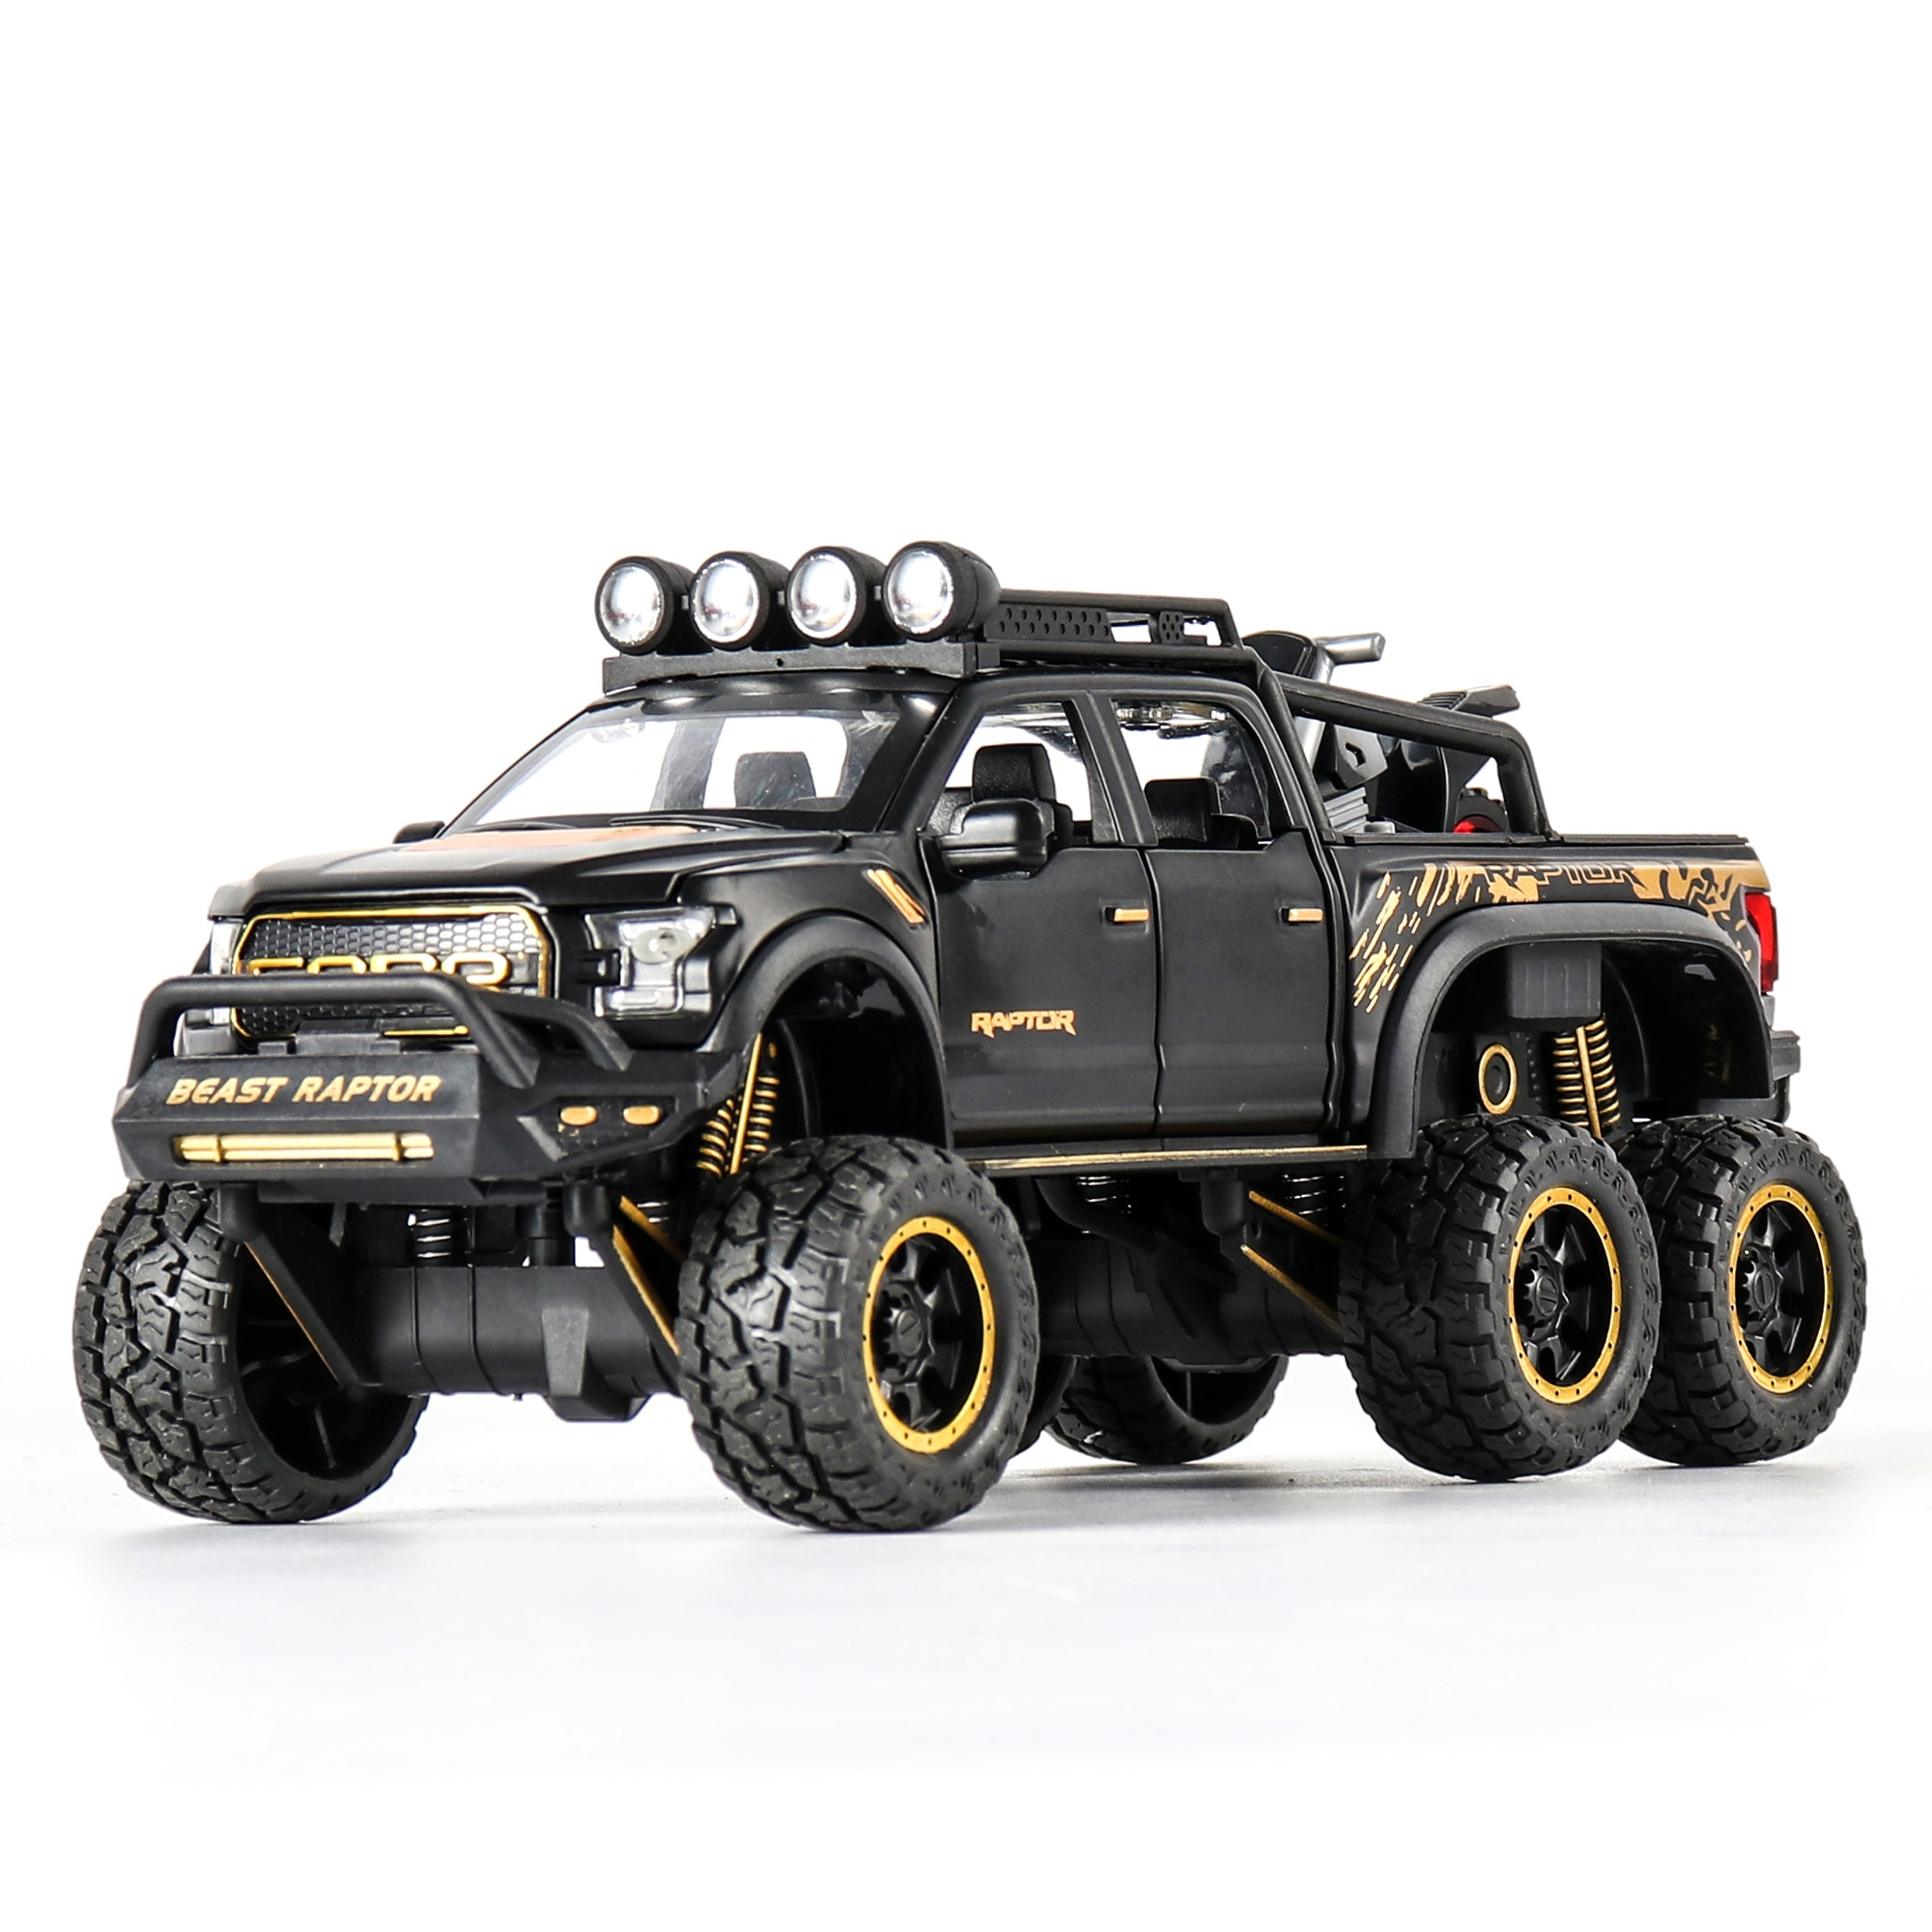 1:28 Diecast SUV FORD RAPTOR Metal Model Car Toy Wheels Alloy Vehicle Sound And Light Pull Back Car Boy Kid Toys Christmas Gift 1 24 diecast car model metal toy vehicle suv alloy car wheels sound and light doors open pull back car boys toys cars kids gift